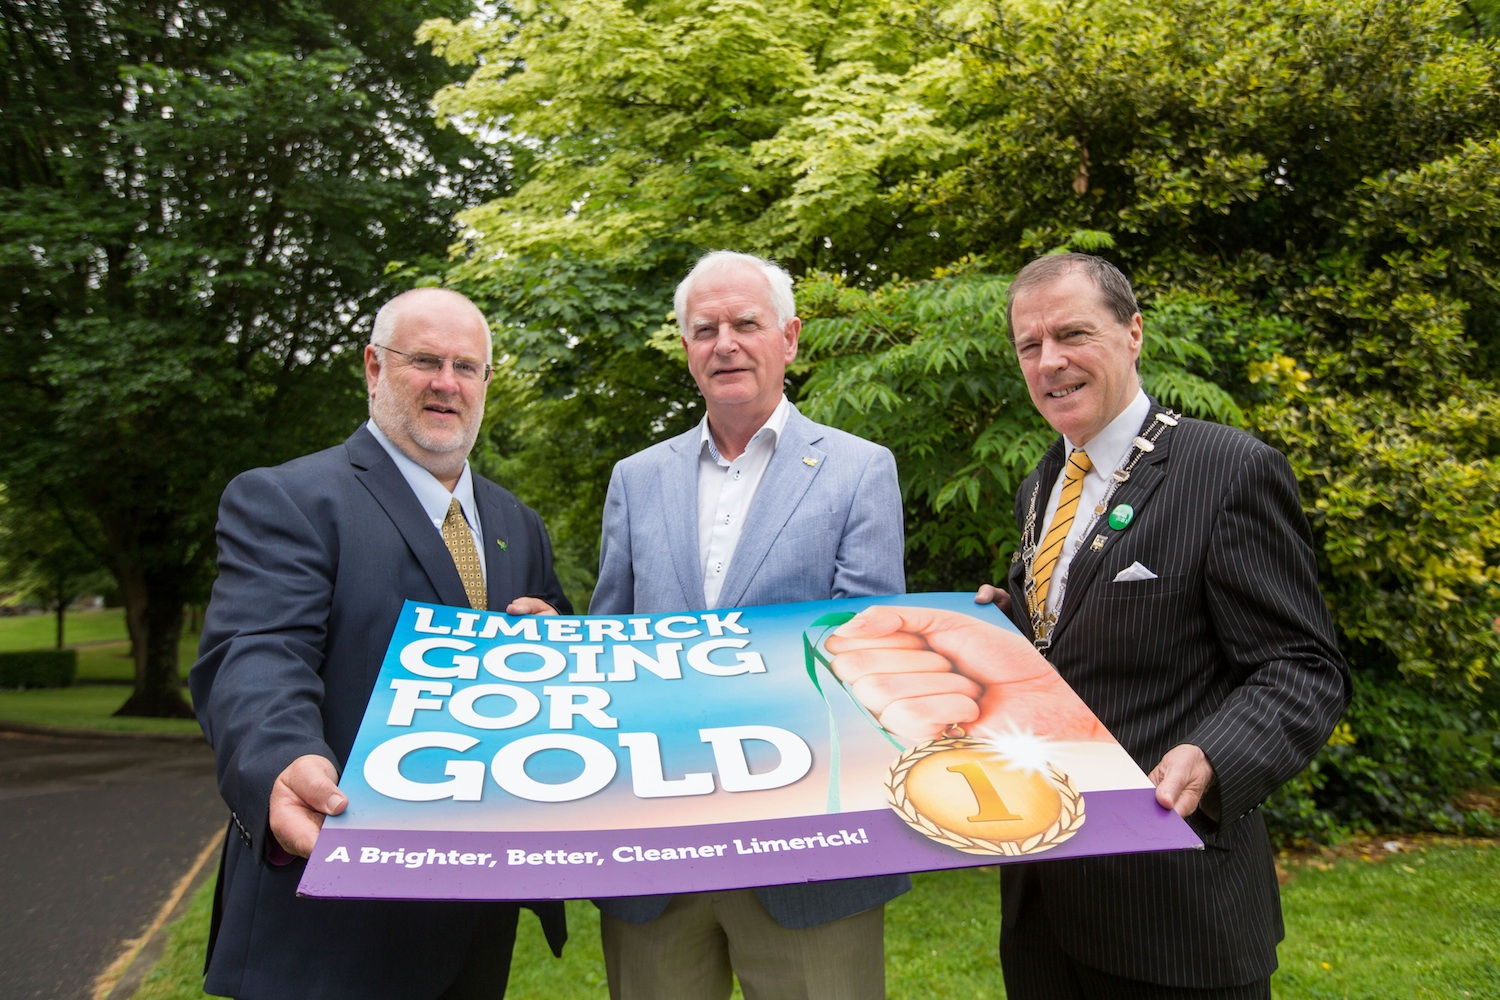 The Limerick Going for Gold 2016